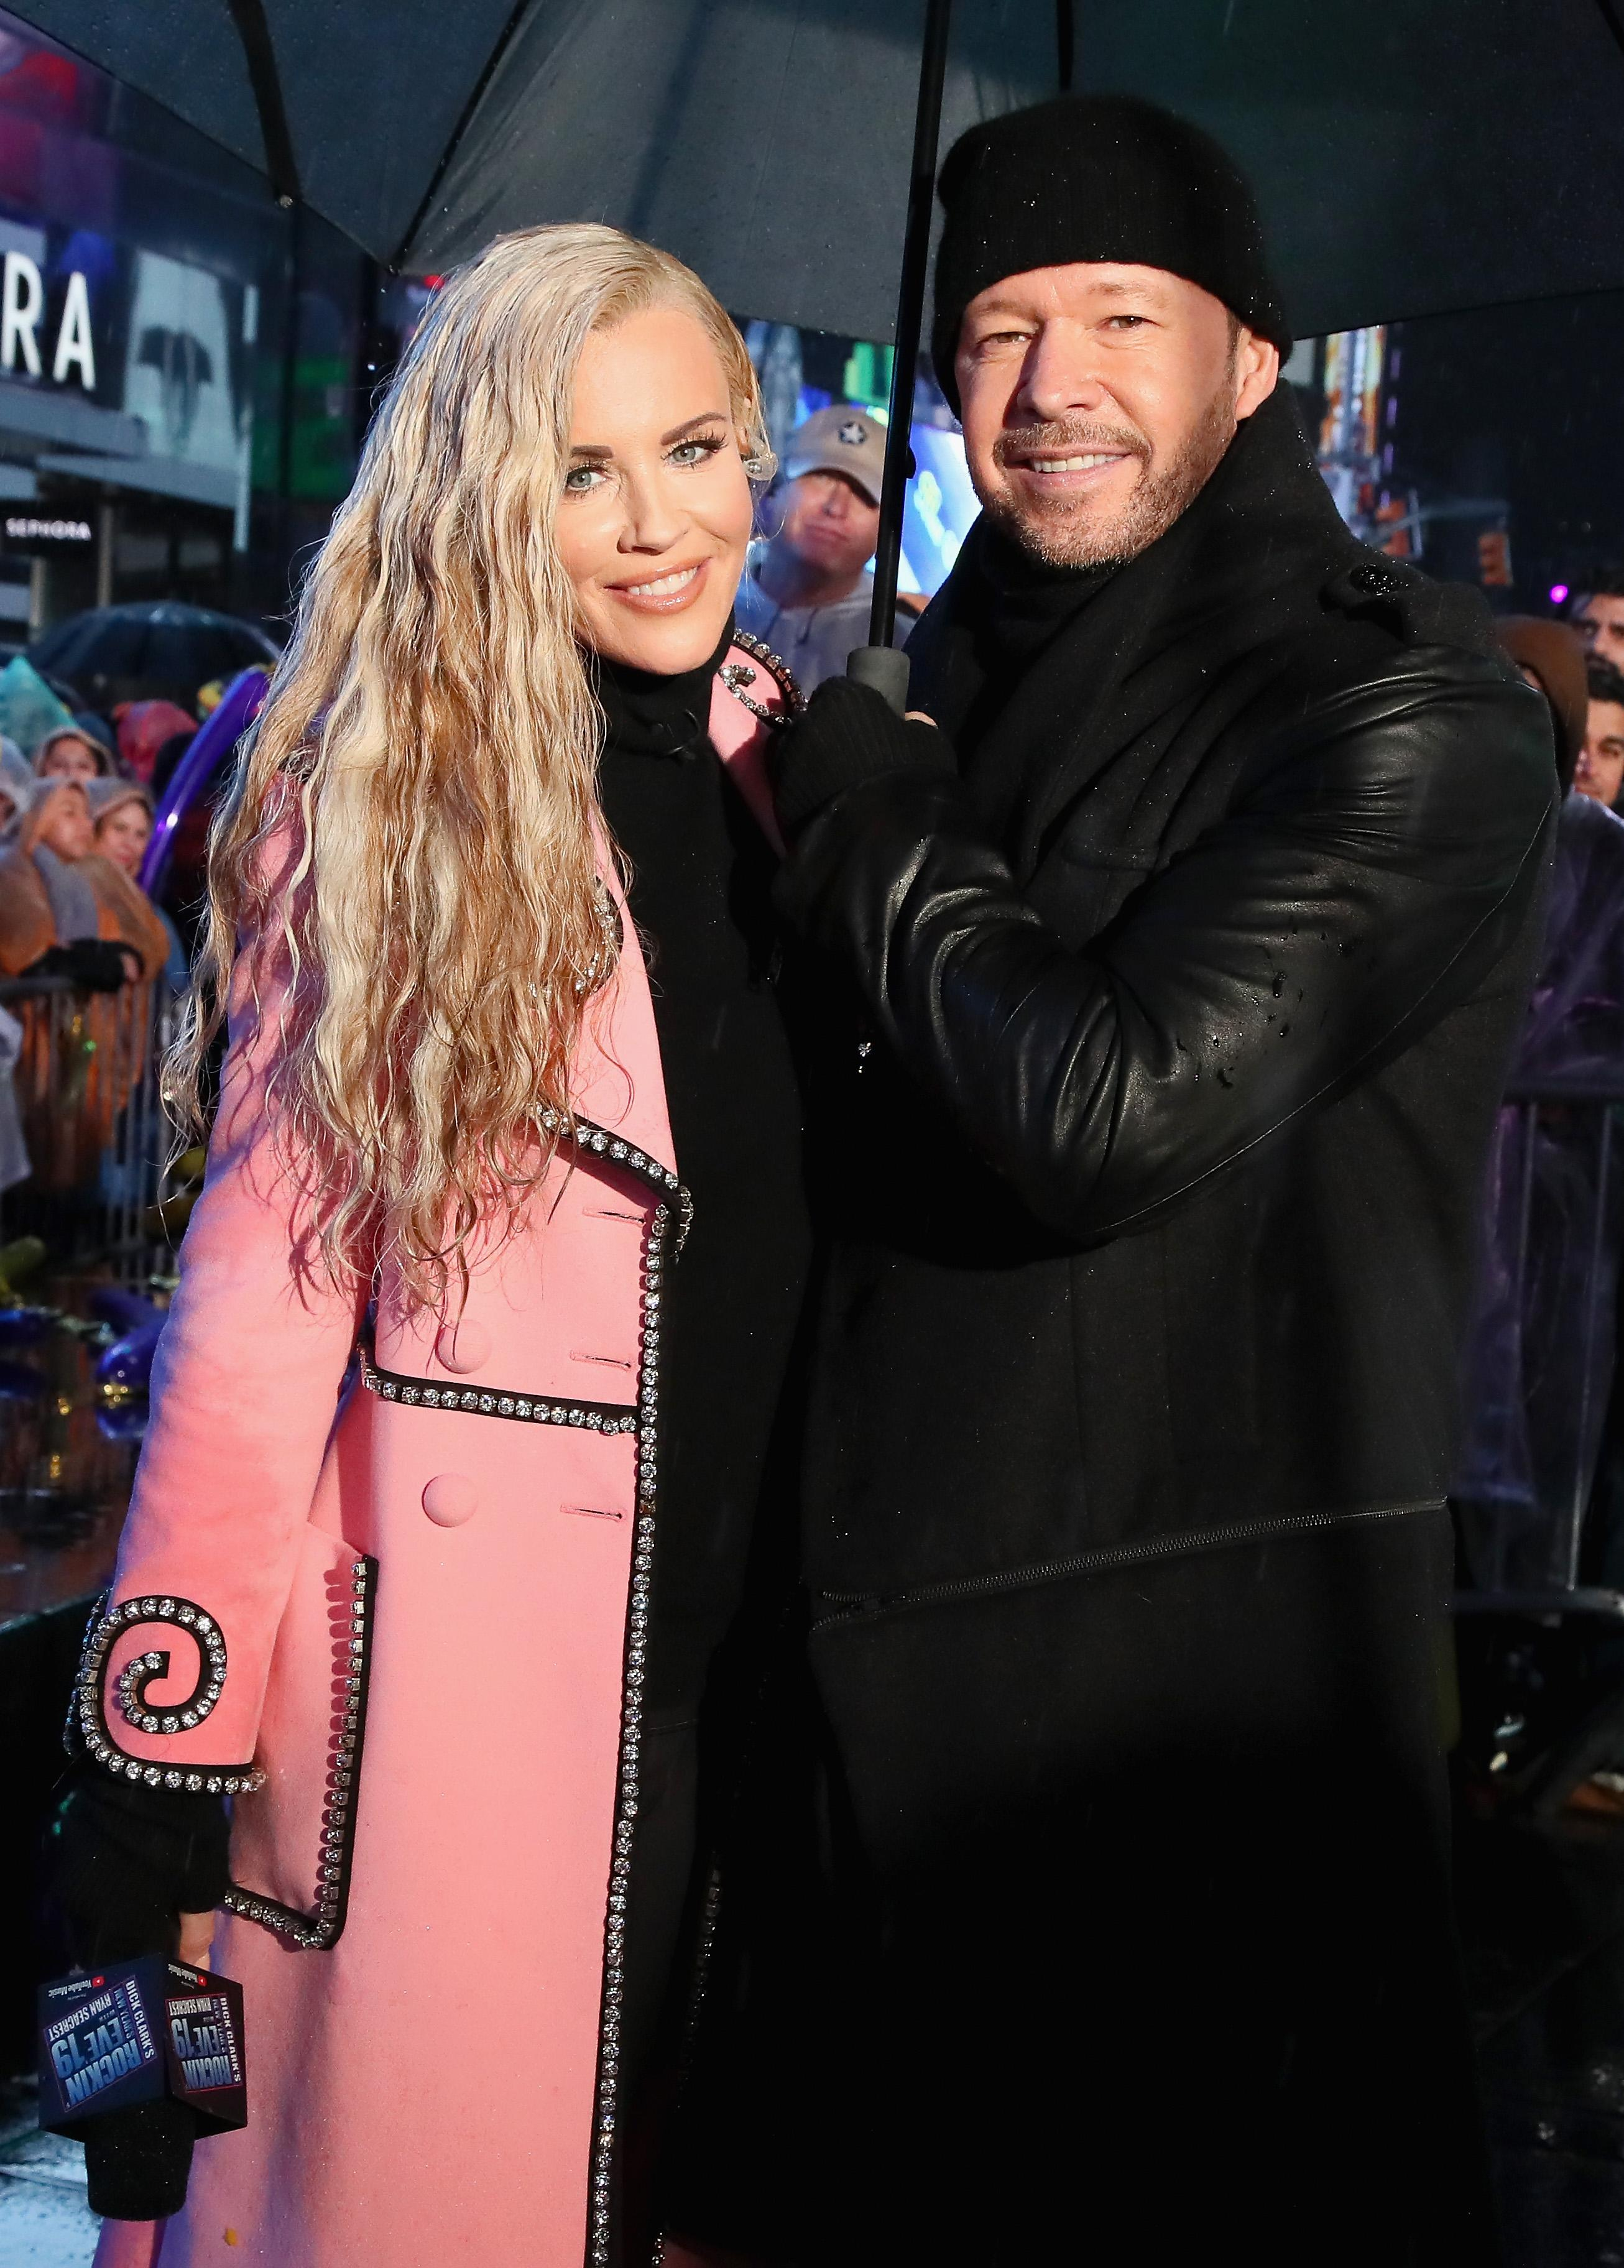 The right stuff: Donnie Wahlberg opens up about giving back, bad-boy image, and the 'greatest Christmas present' he gave Jenny McCarthy